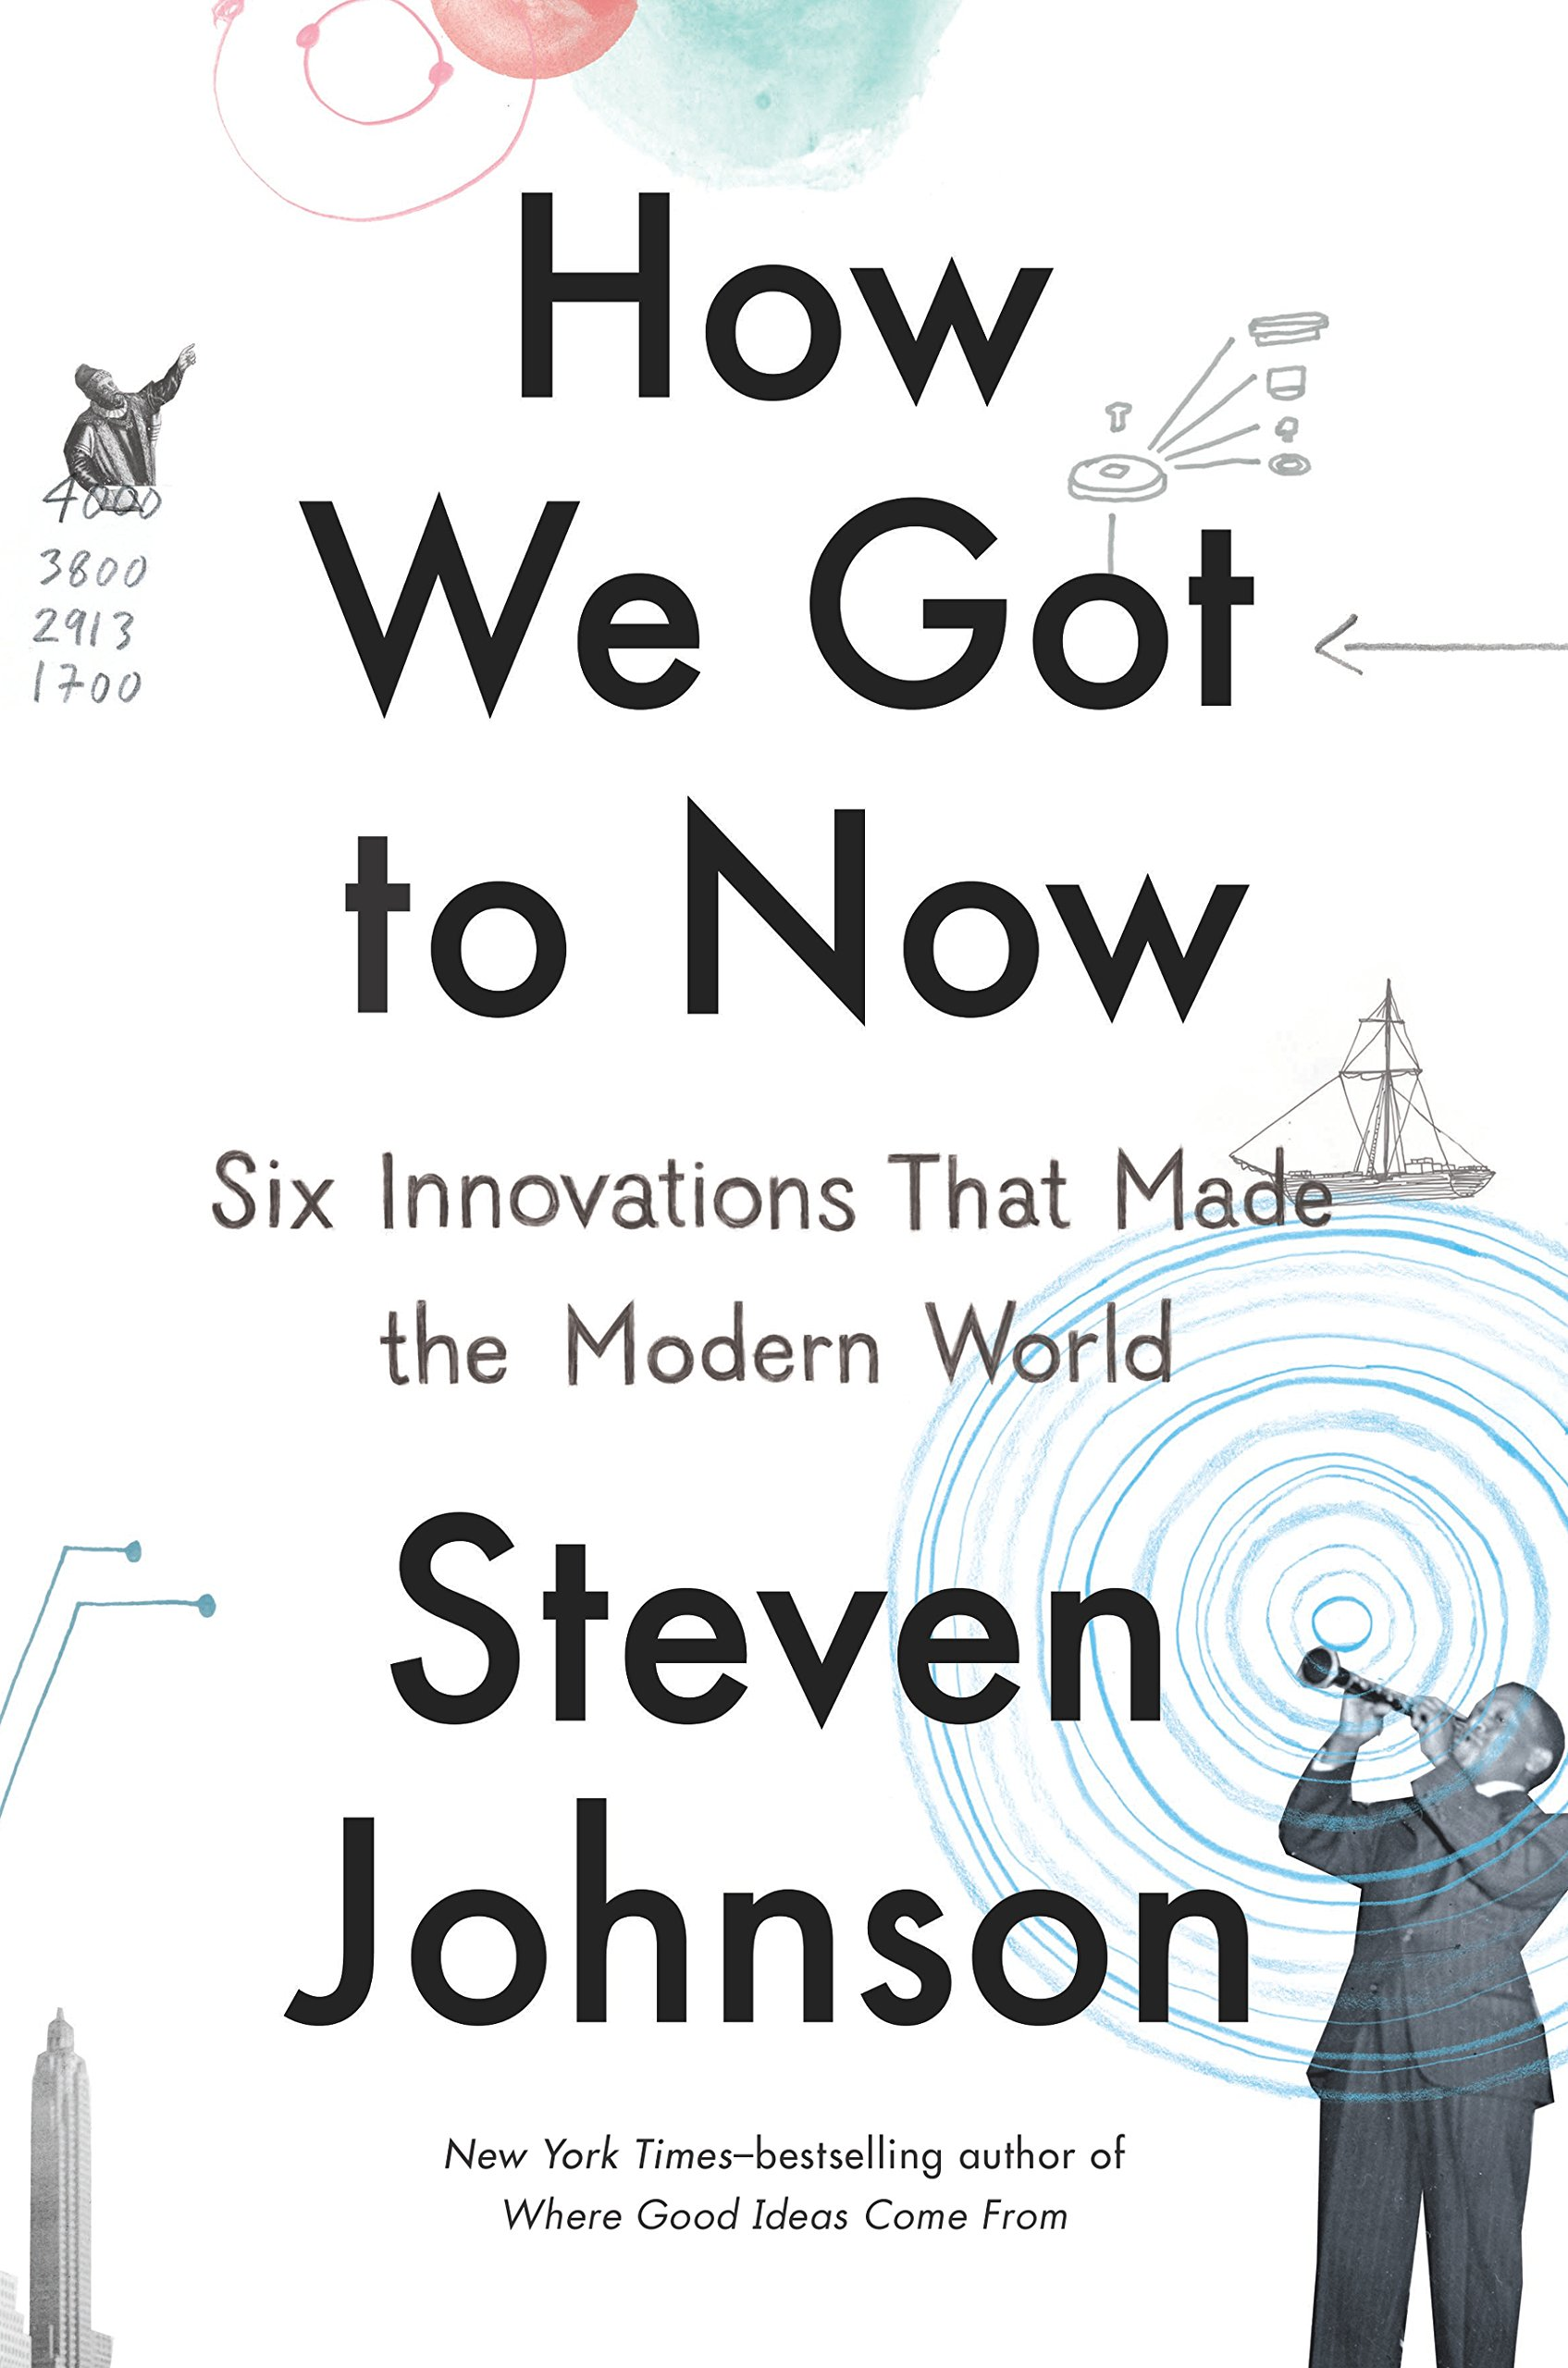 How We Got to Now- by Steven Johnson